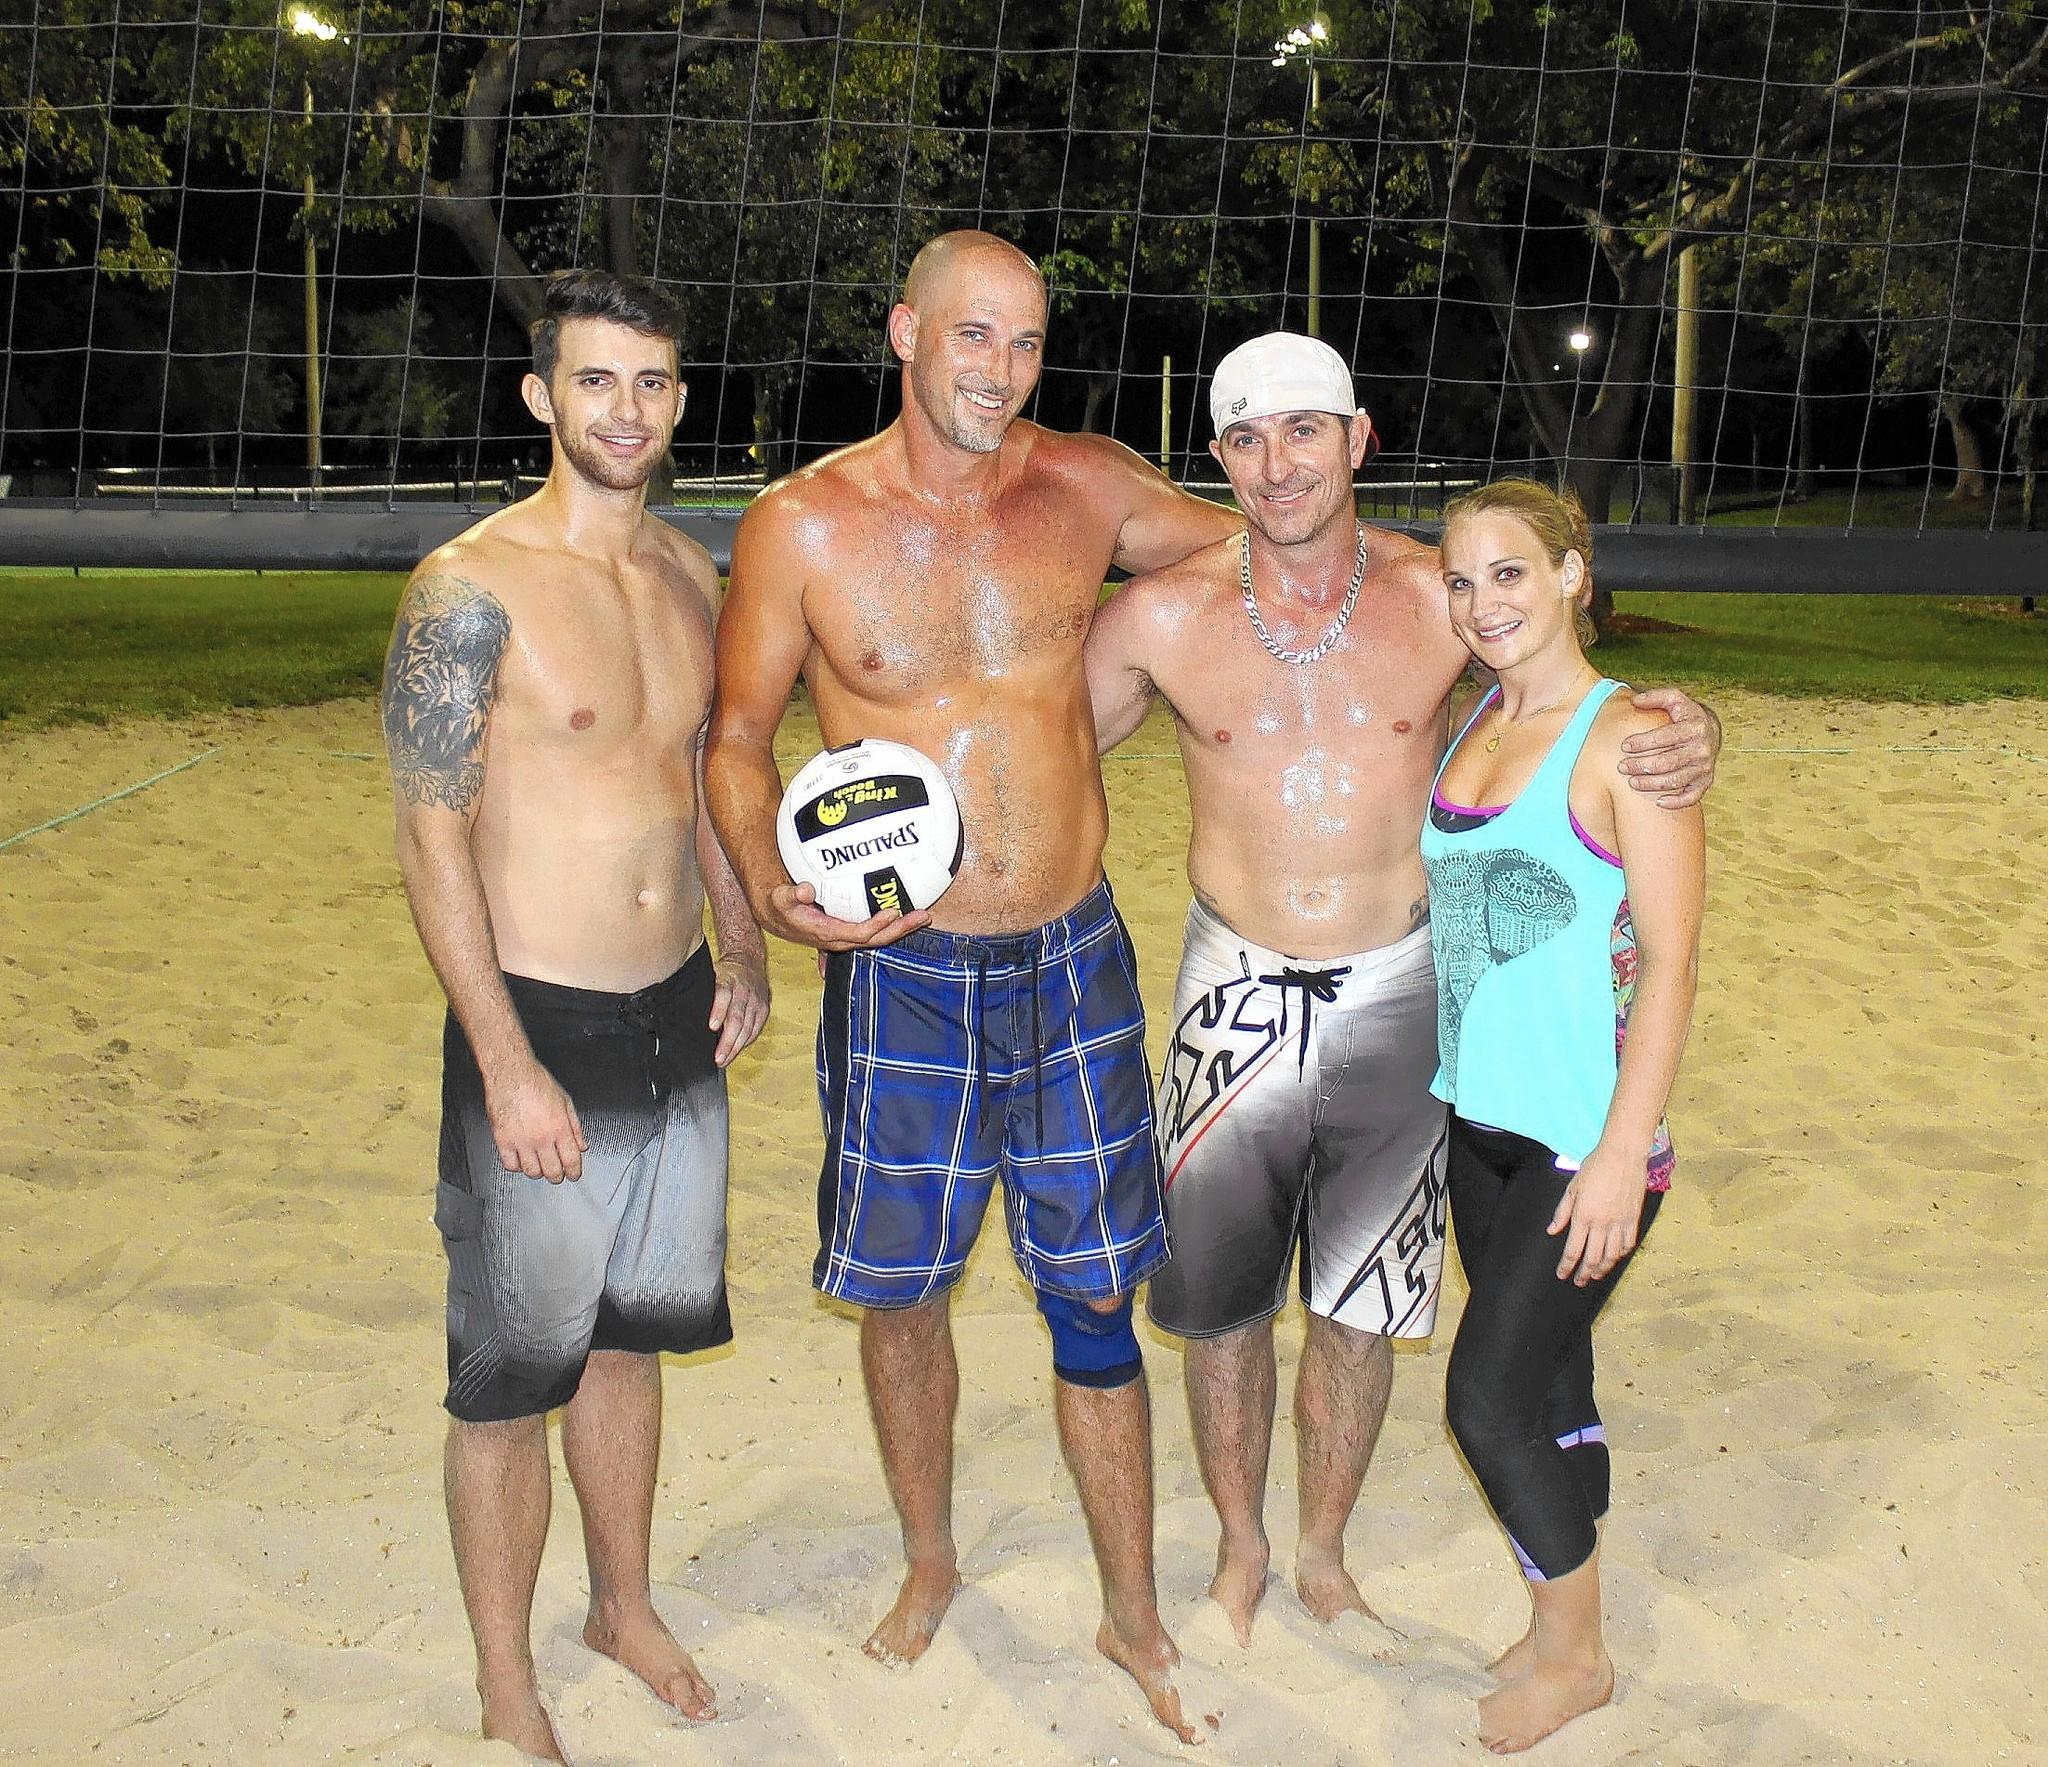 The Village Pump sand volleyball team claimed the Spring/Summer Pompano Beach co-ed adult Tuesday night league championship at Pompano Community Park by defeating Fourlokos 21-13, 21-18 to finish 11-4. Pictured are, from left, Ben Harris, Ted Stefanich, Marshall Bates, Danielle Michaels.